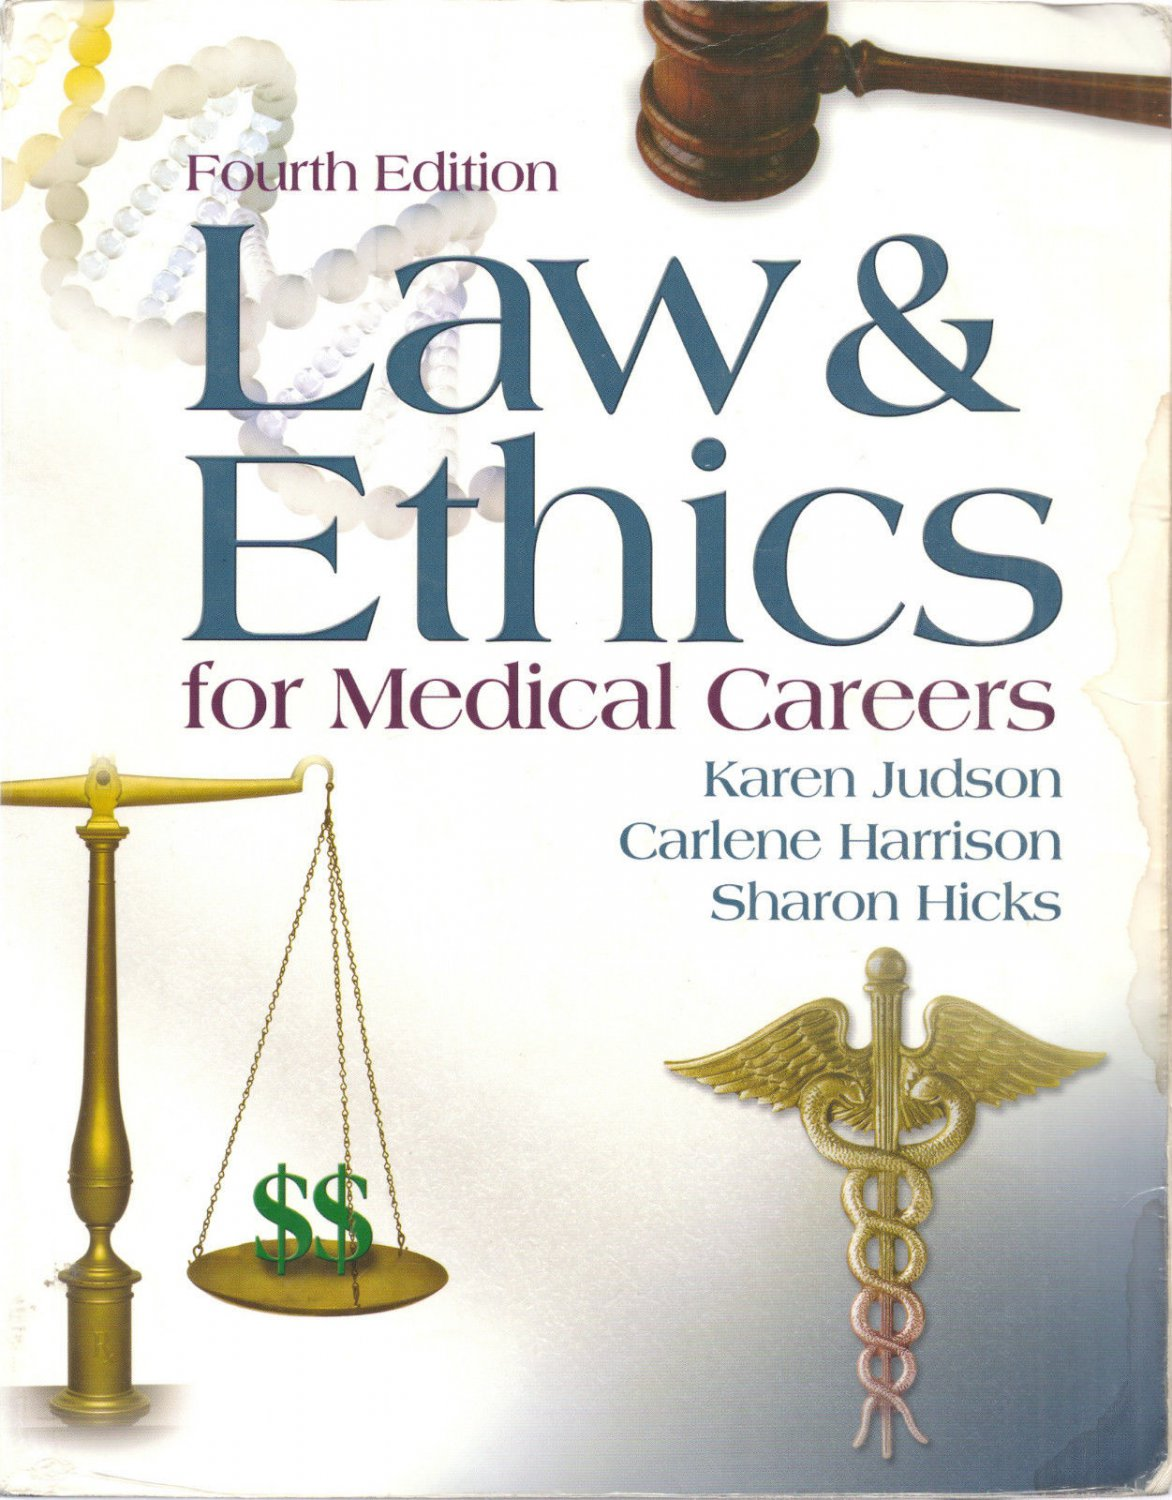 medical law and ethics Medical law and ethics is a fascinating area to study dealing with some of the most contested and controversial issues of our time assisted dying, abortion, and embryo research to name three.